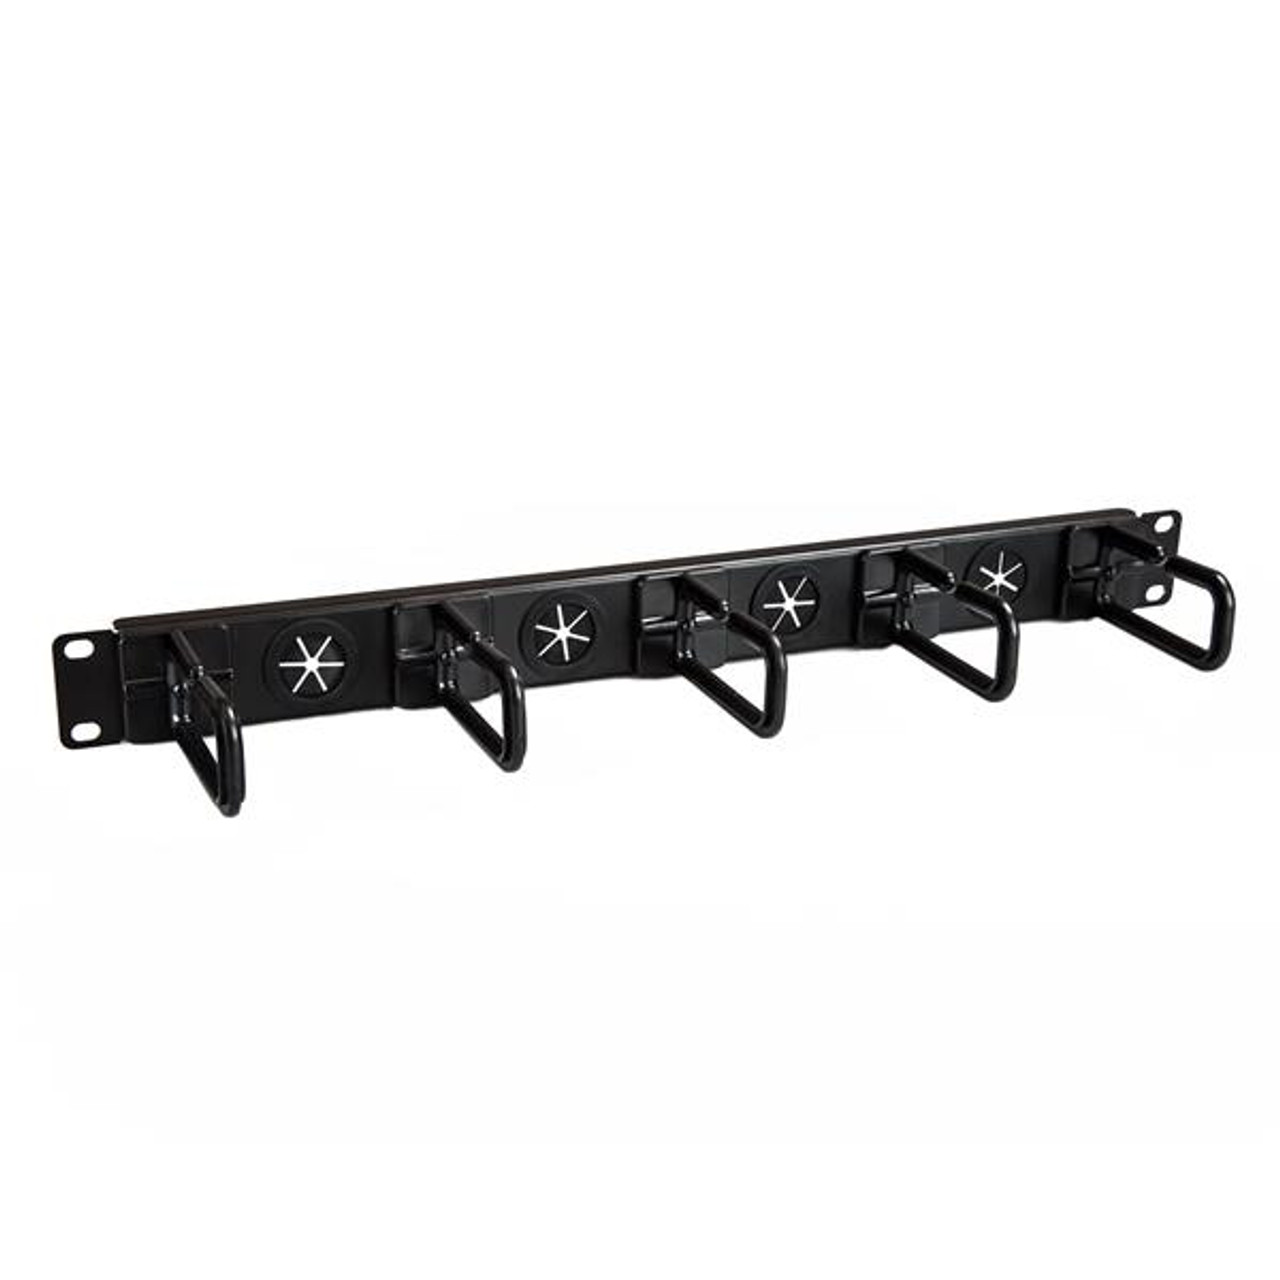 Image for StarTech Cable Manager - Cable Organizer - D-ring Hooks - Holes - 1U CX Computer Superstore